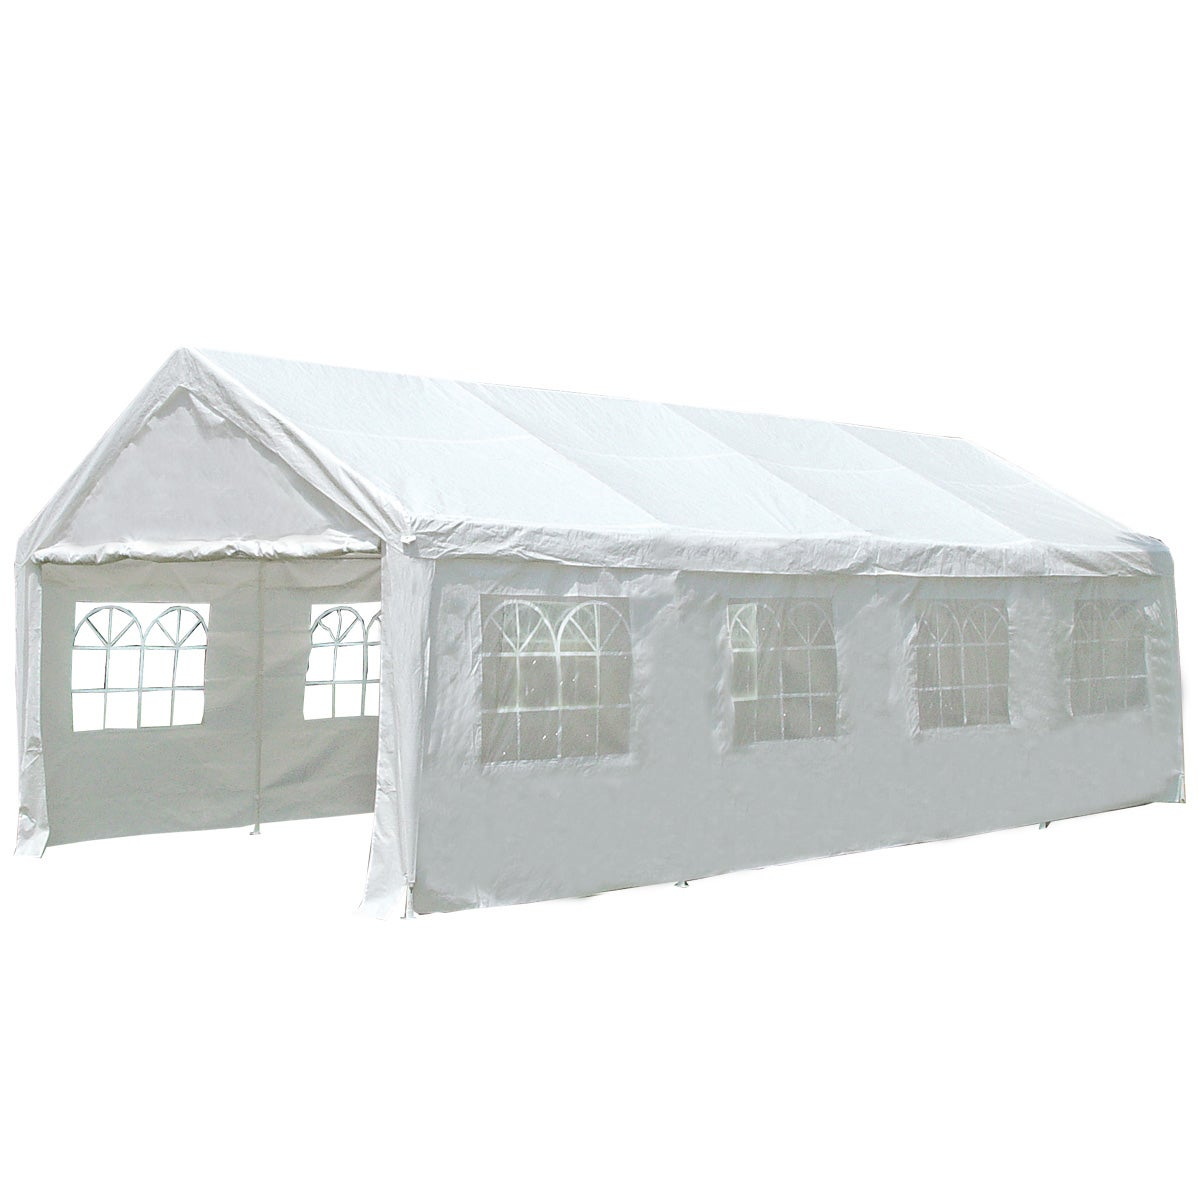 Wedding With White Tent: New White 4x8 Gazebo Party Wedding Tent Event Shade